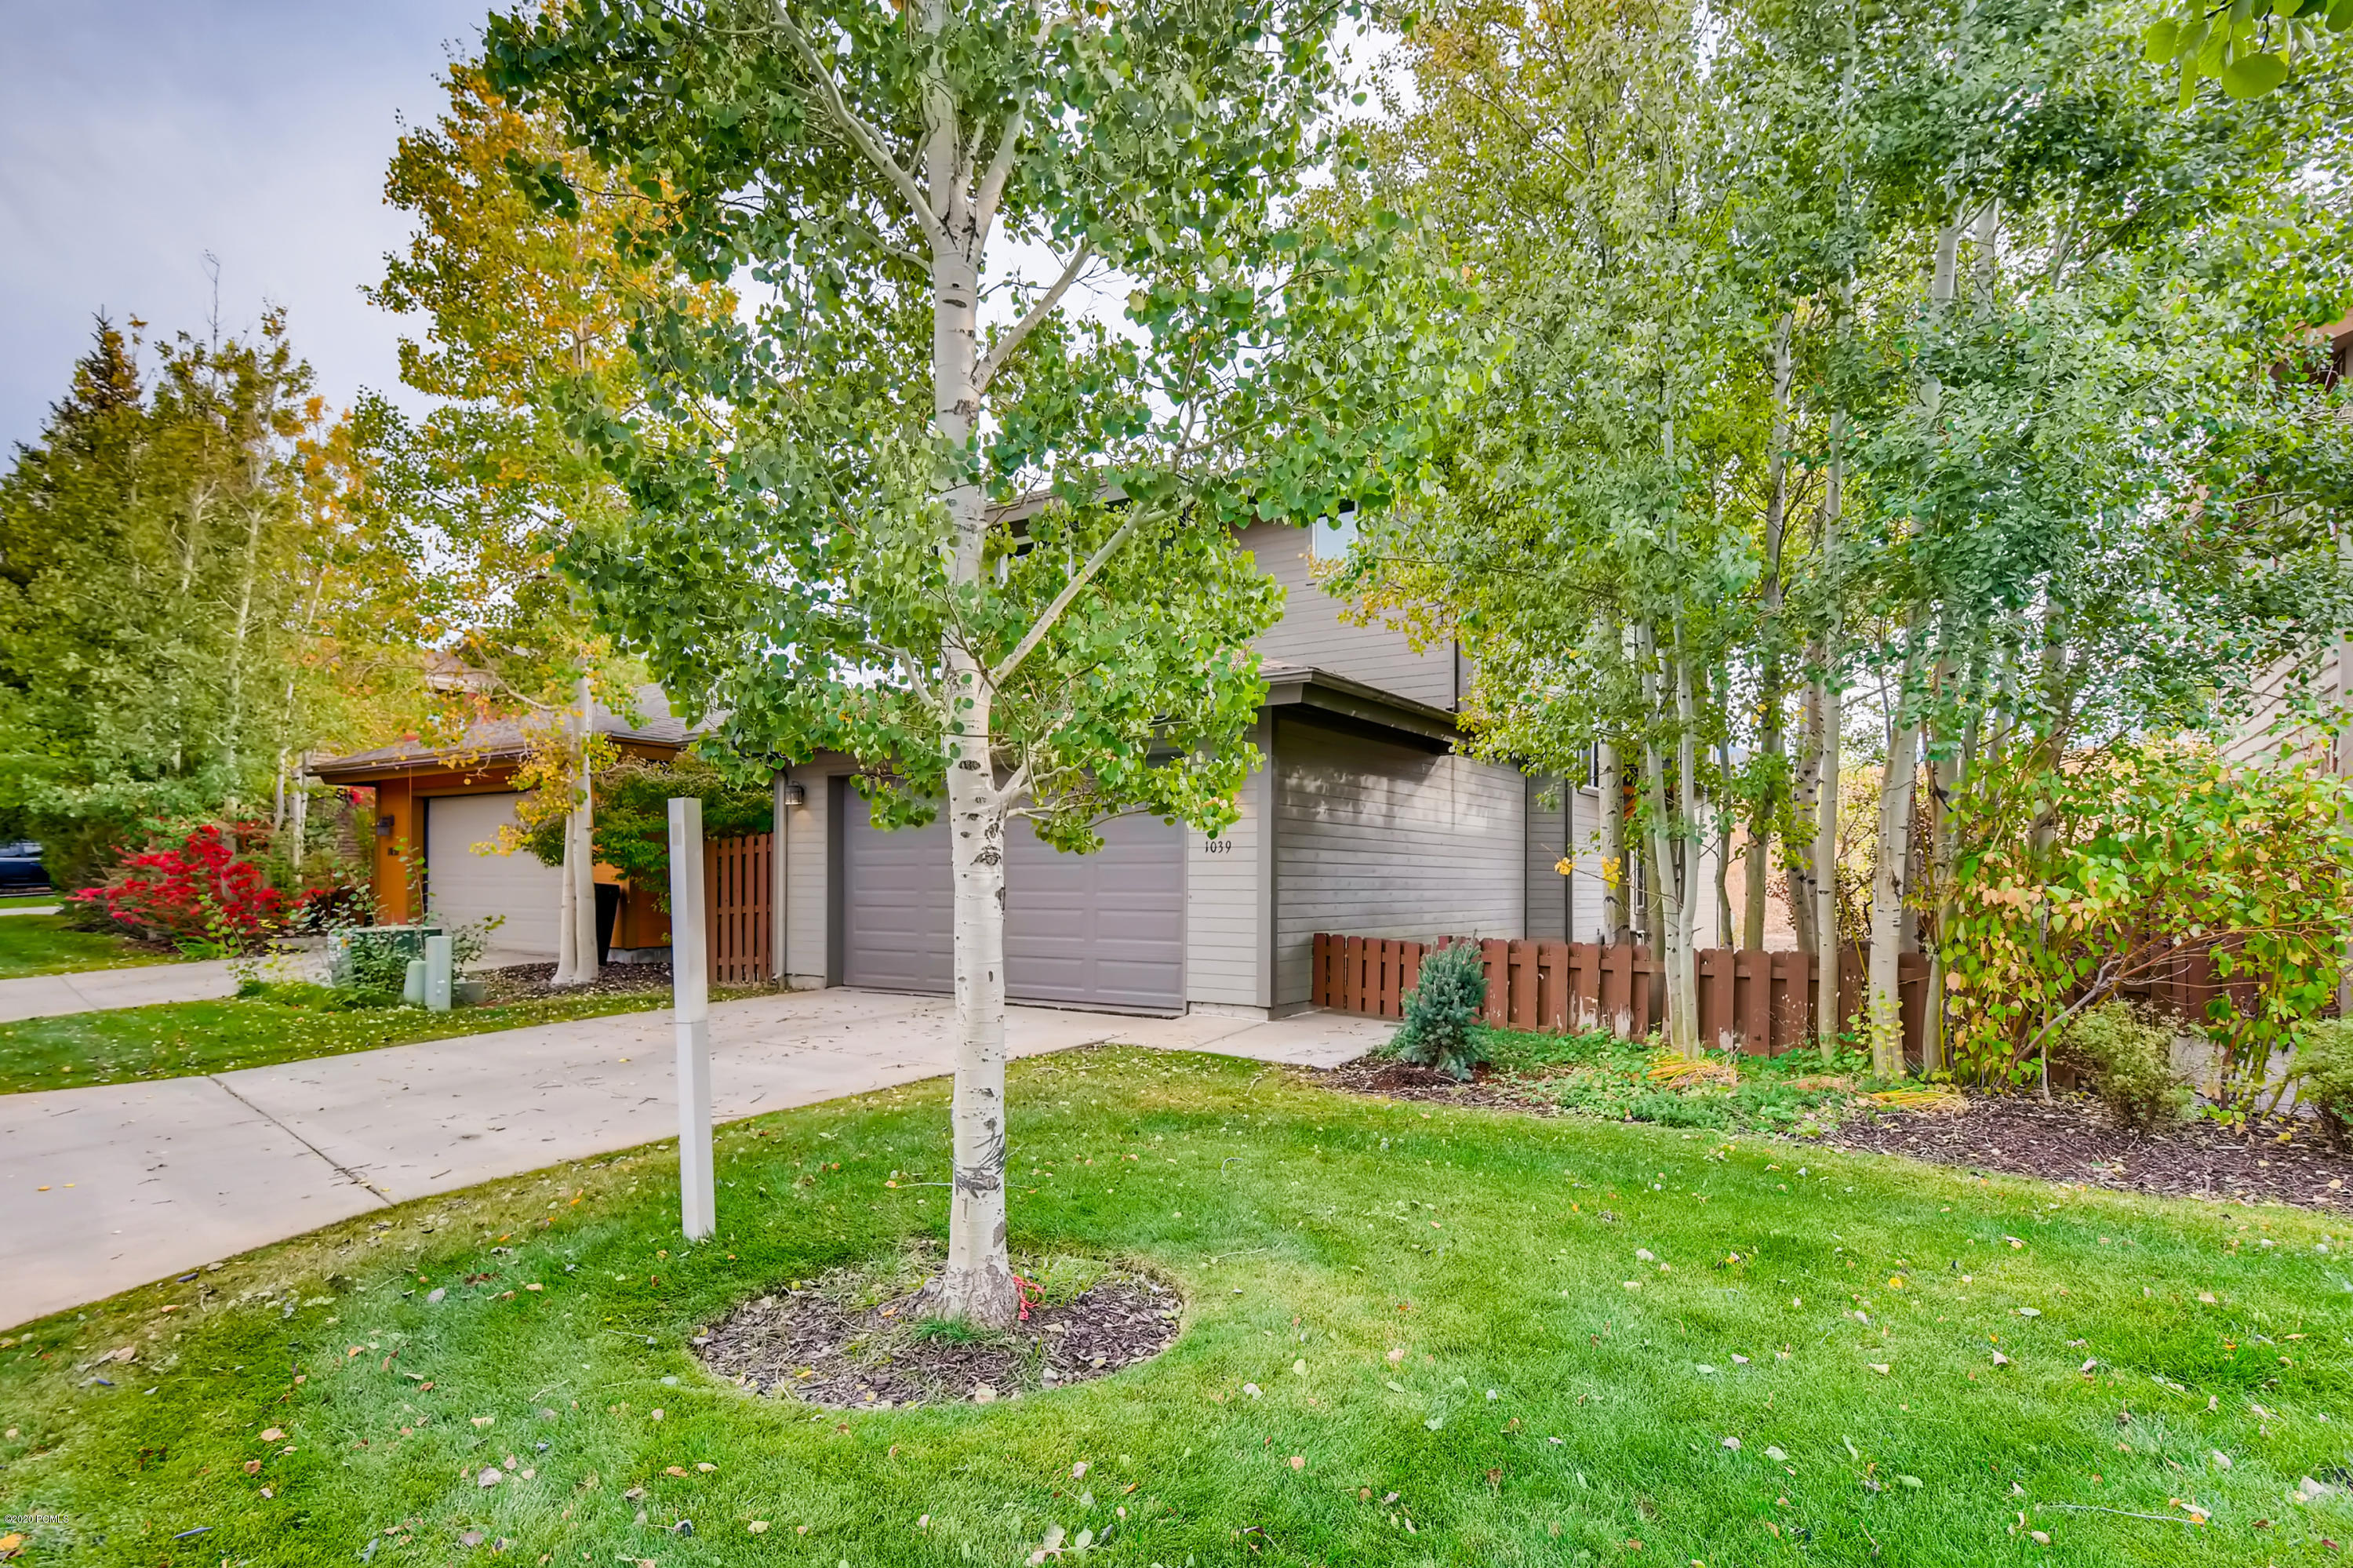 1039 Lincoln Lane, Park City, Utah 84098, 3 Bedrooms Bedrooms, ,3 BathroomsBathrooms,Single Family,For Sale,Lincoln,12003665